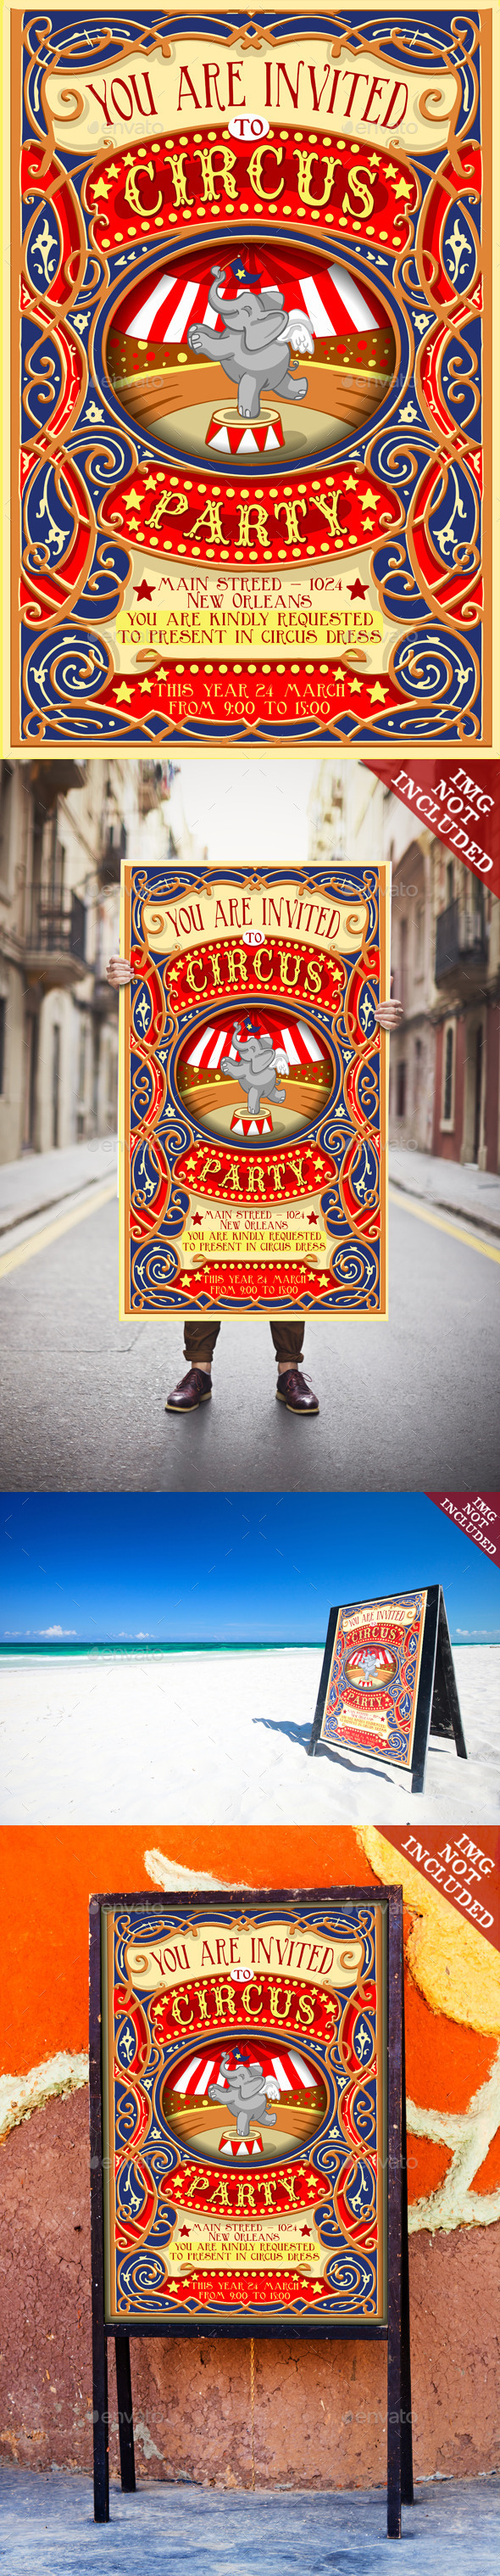 GraphicRiver Poster Invite for Circus Party with Elephant 10024833